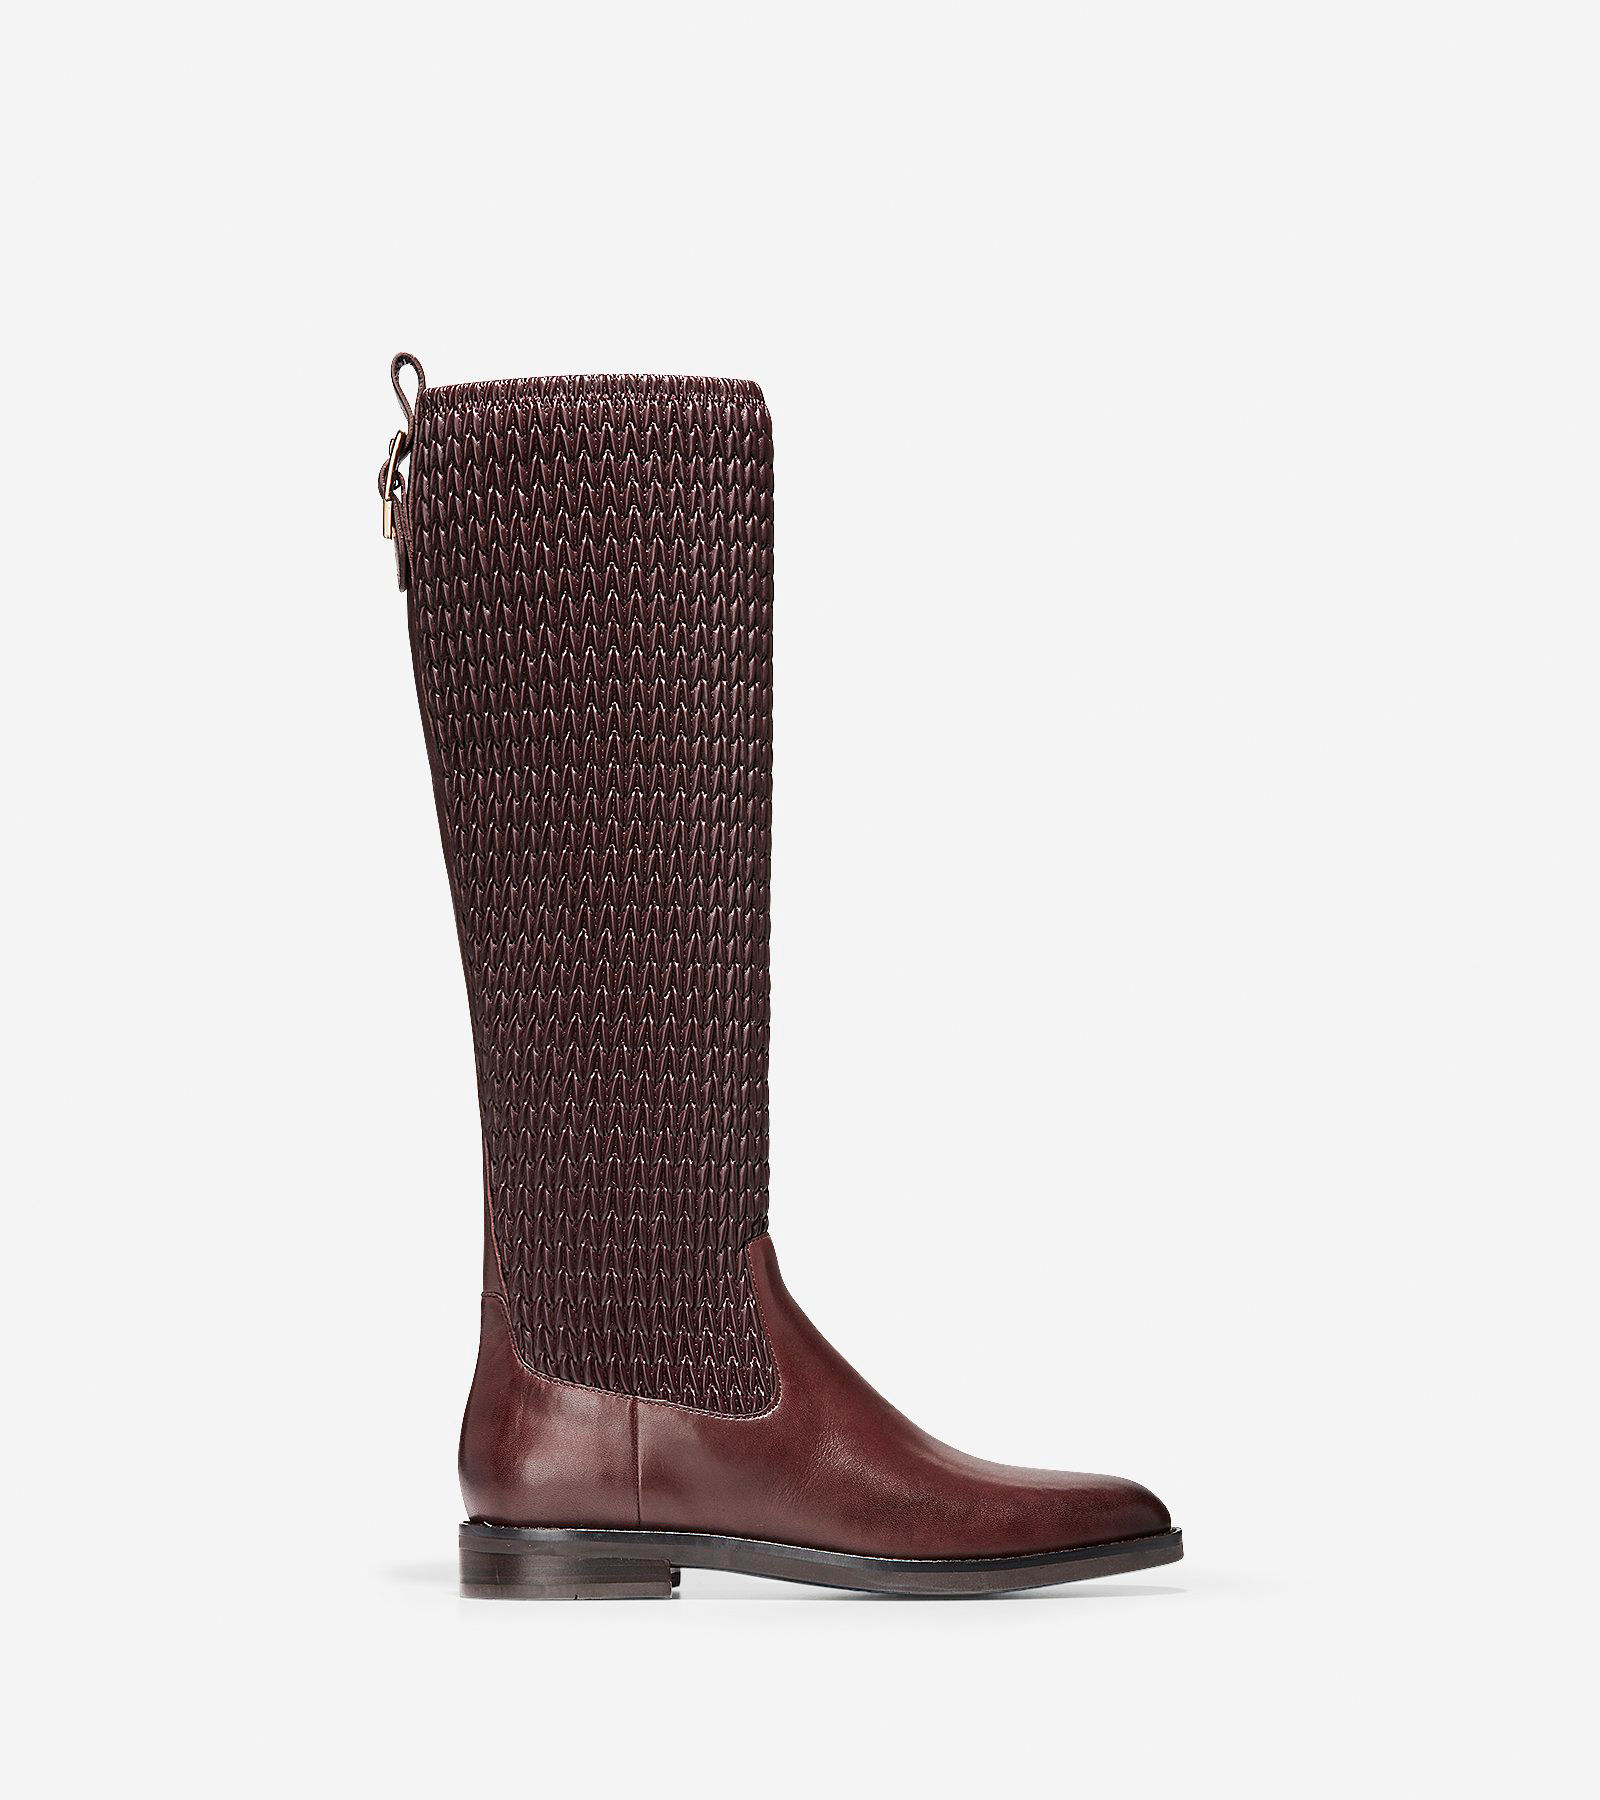 Women's Lexi Grand Stretch Boots in Chocolate | Cole Haan